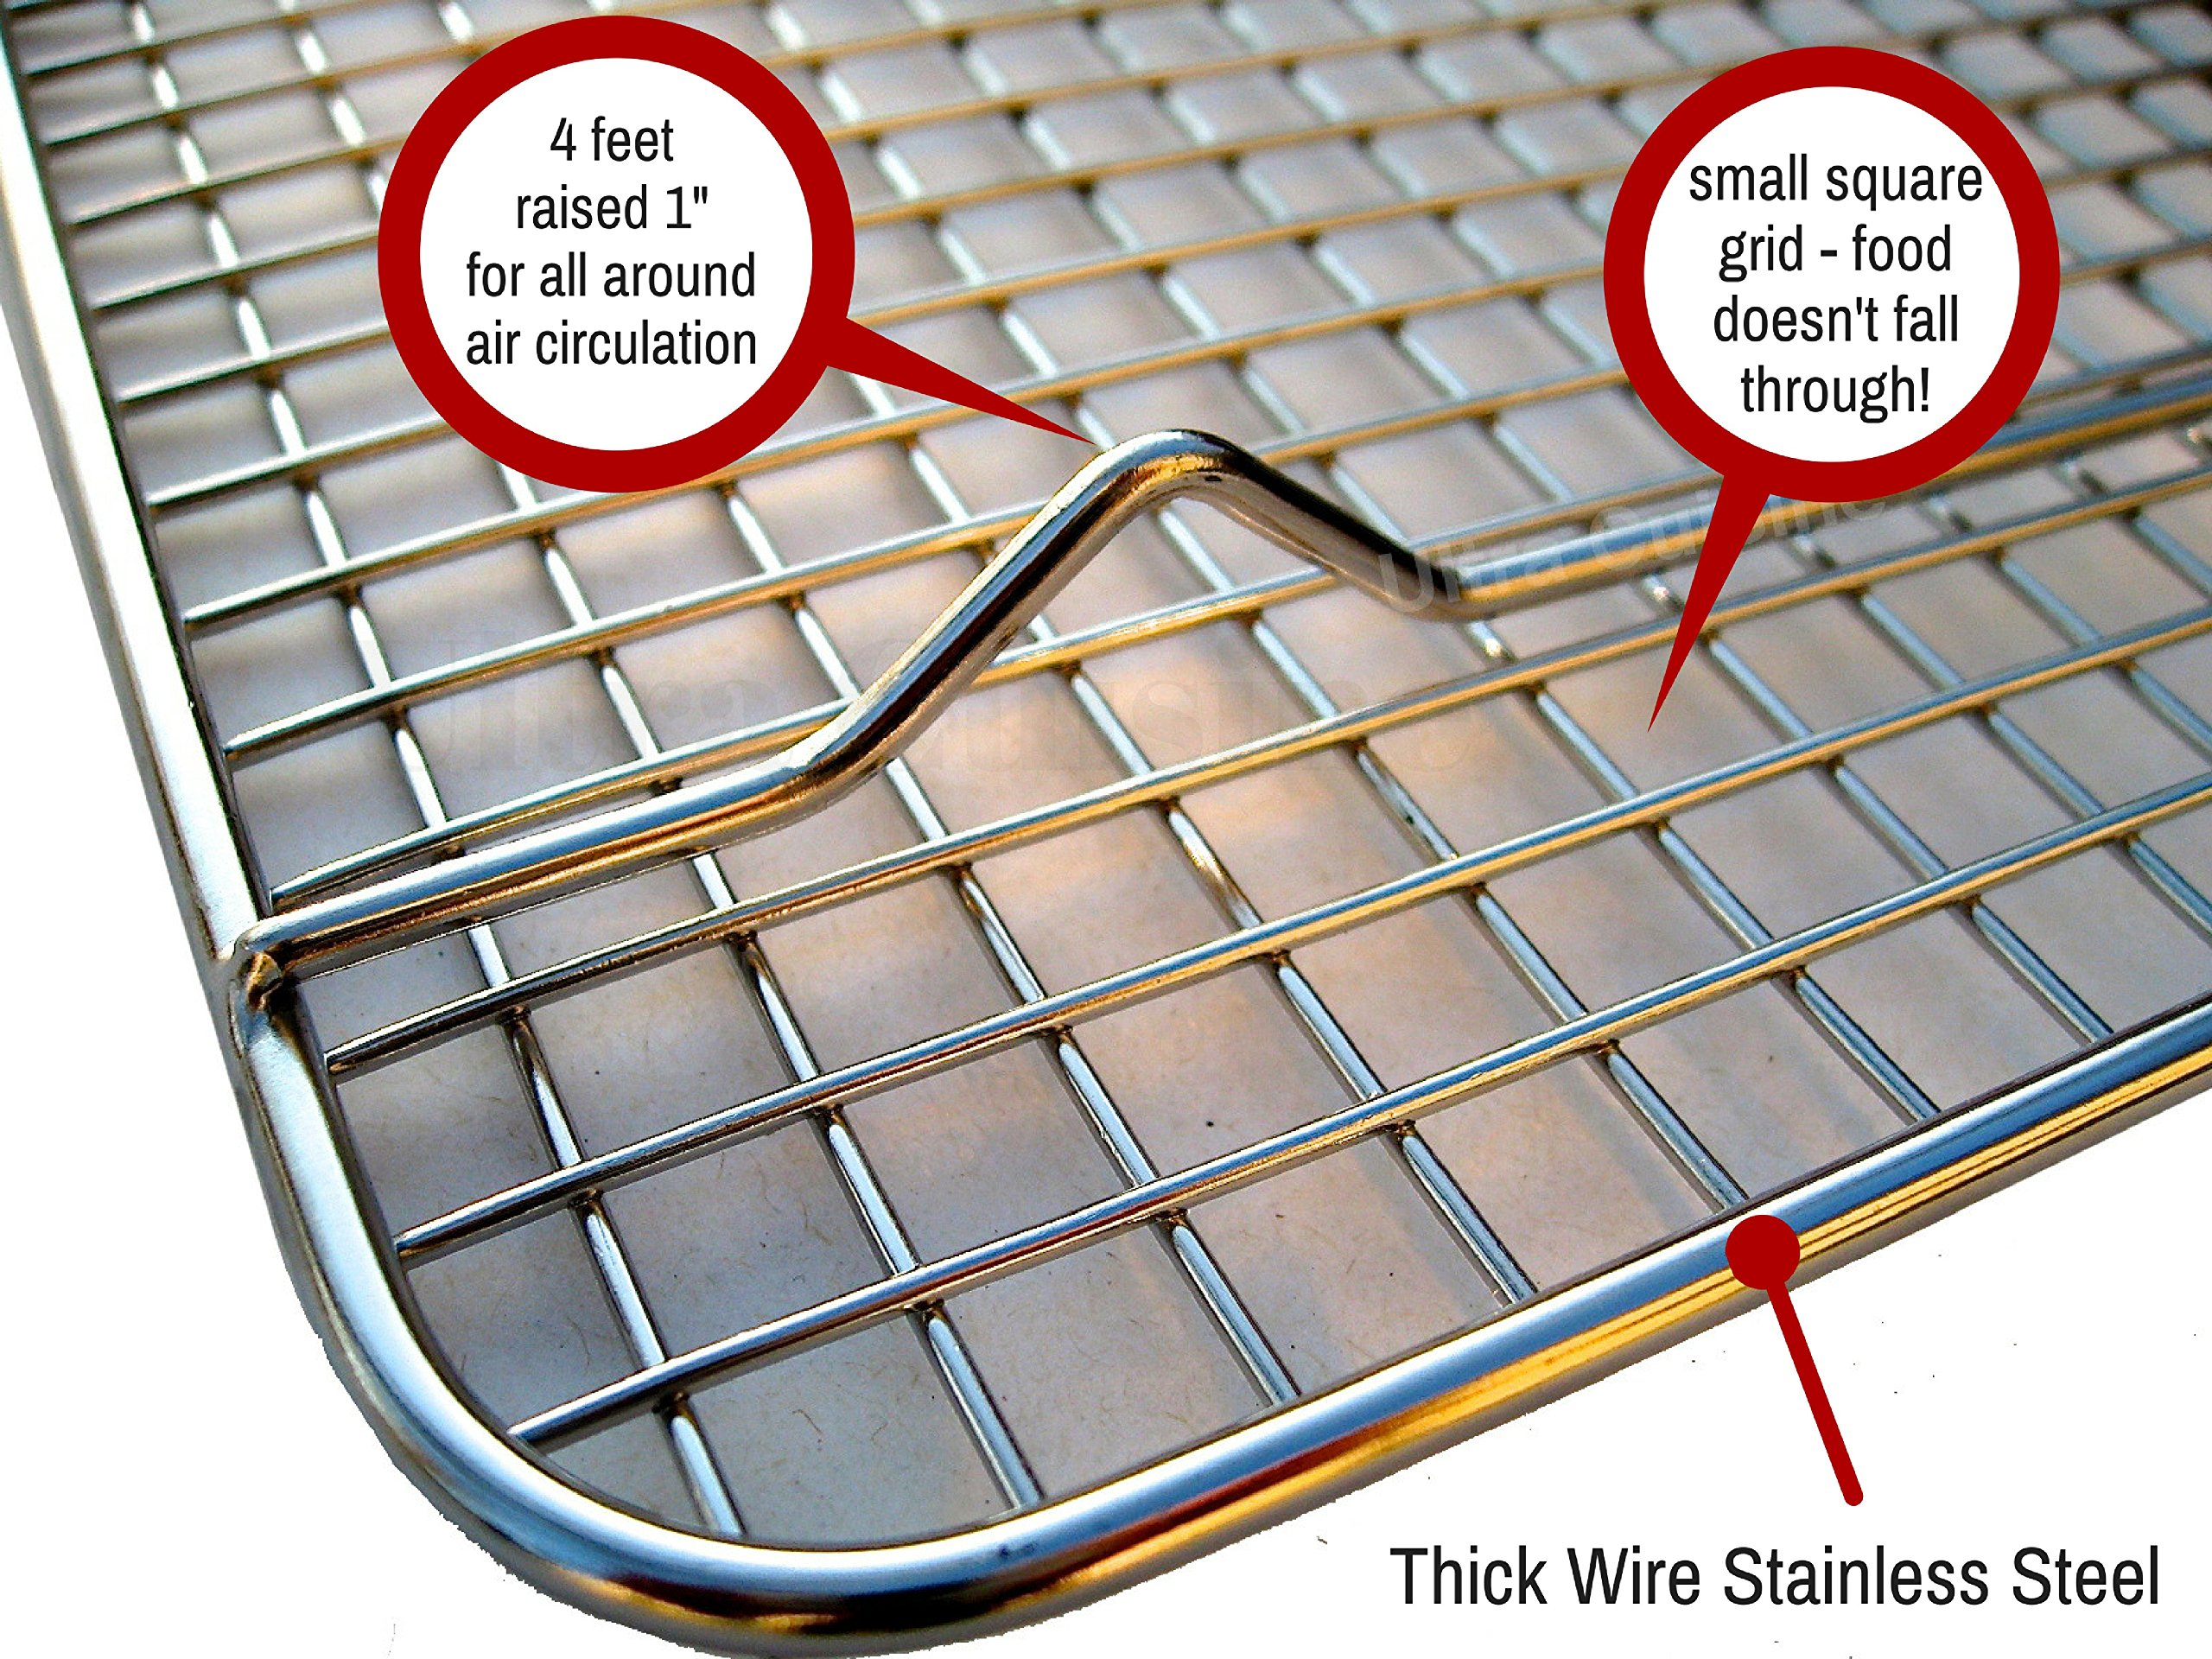 Cooling Baking & Roasting Racks for Quarter Sheet Size Pans - 100% Stainless Steel Wire Racks for Cooking - Dishwasher & Oven Safe, Rust Resistant, Heavy Duty by Ultra Cuisine (8.5'' x 12'' - Set of 2) by Ultra Cuisine (Image #6)